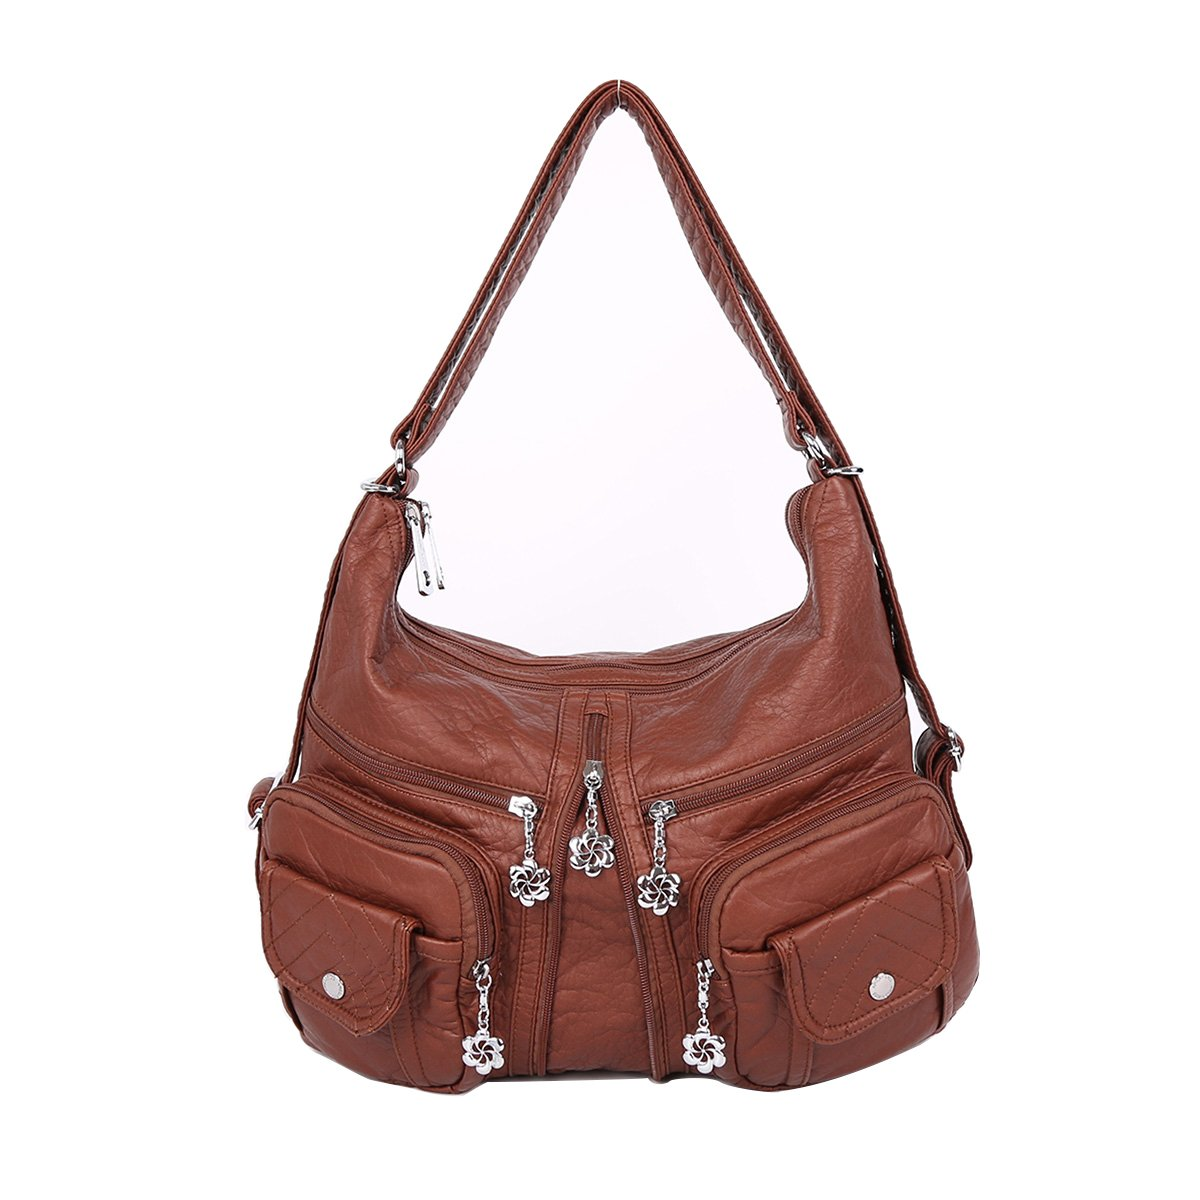 Angelkiss 2 Top Zippers Multi Pockets Handbags Washed Leather Purses Shoulder Bags Backpack AK678 (Brown)